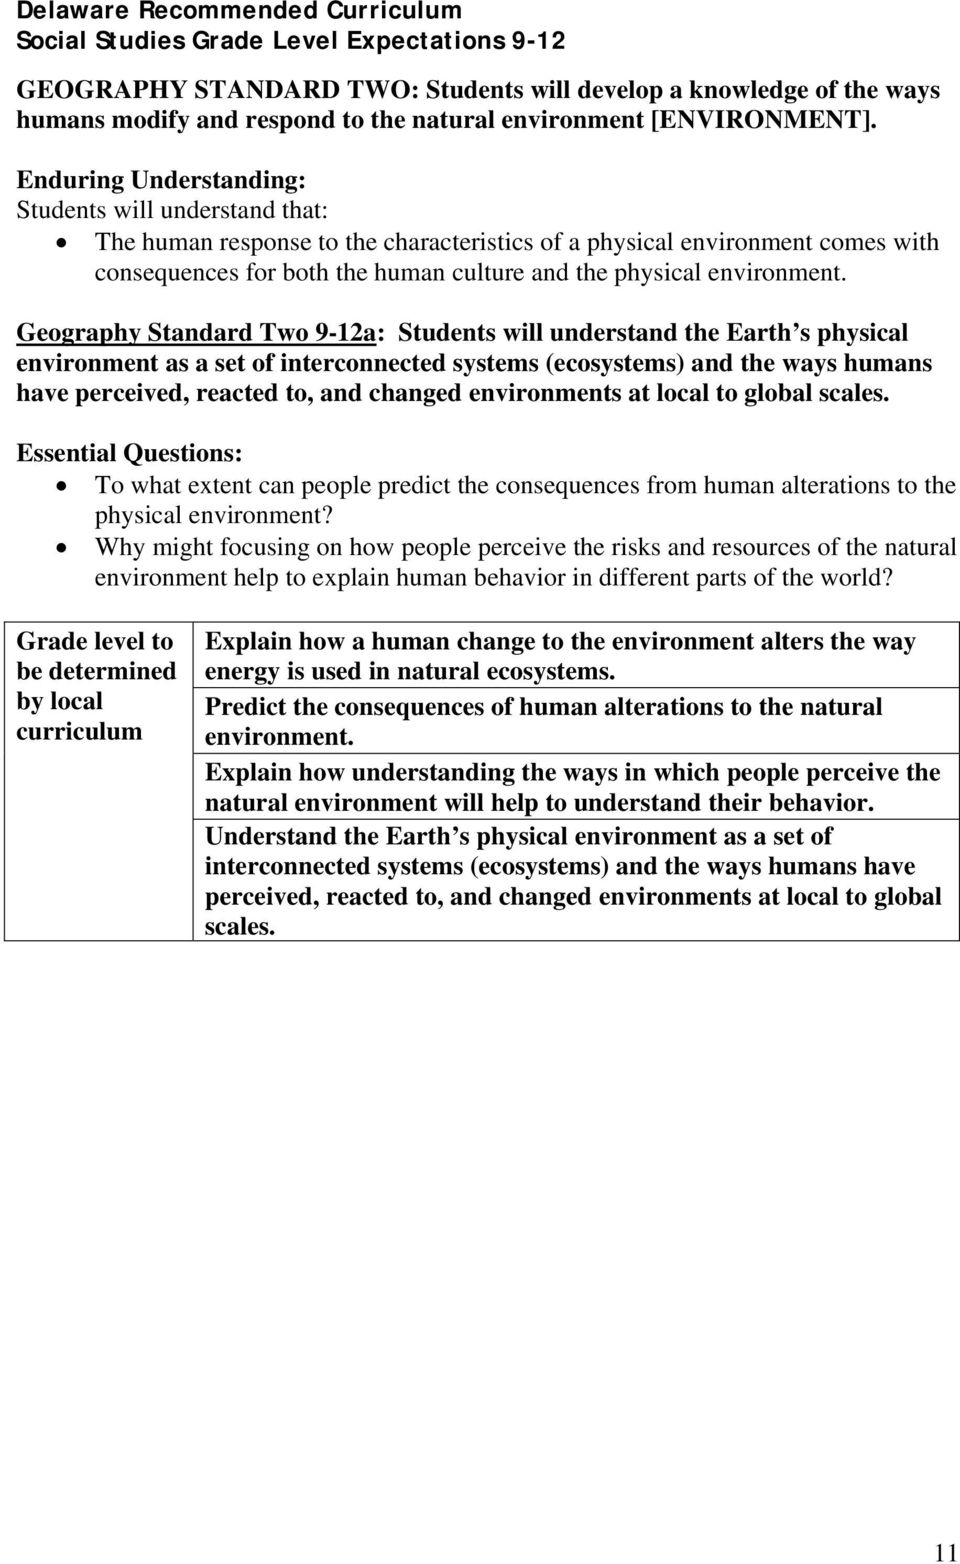 Geography Standard Two 9-12a: Students will understand the Earth s physical environment as a set of interconnected systems (ecosystems) and the ways humans have perceived, reacted to, and changed